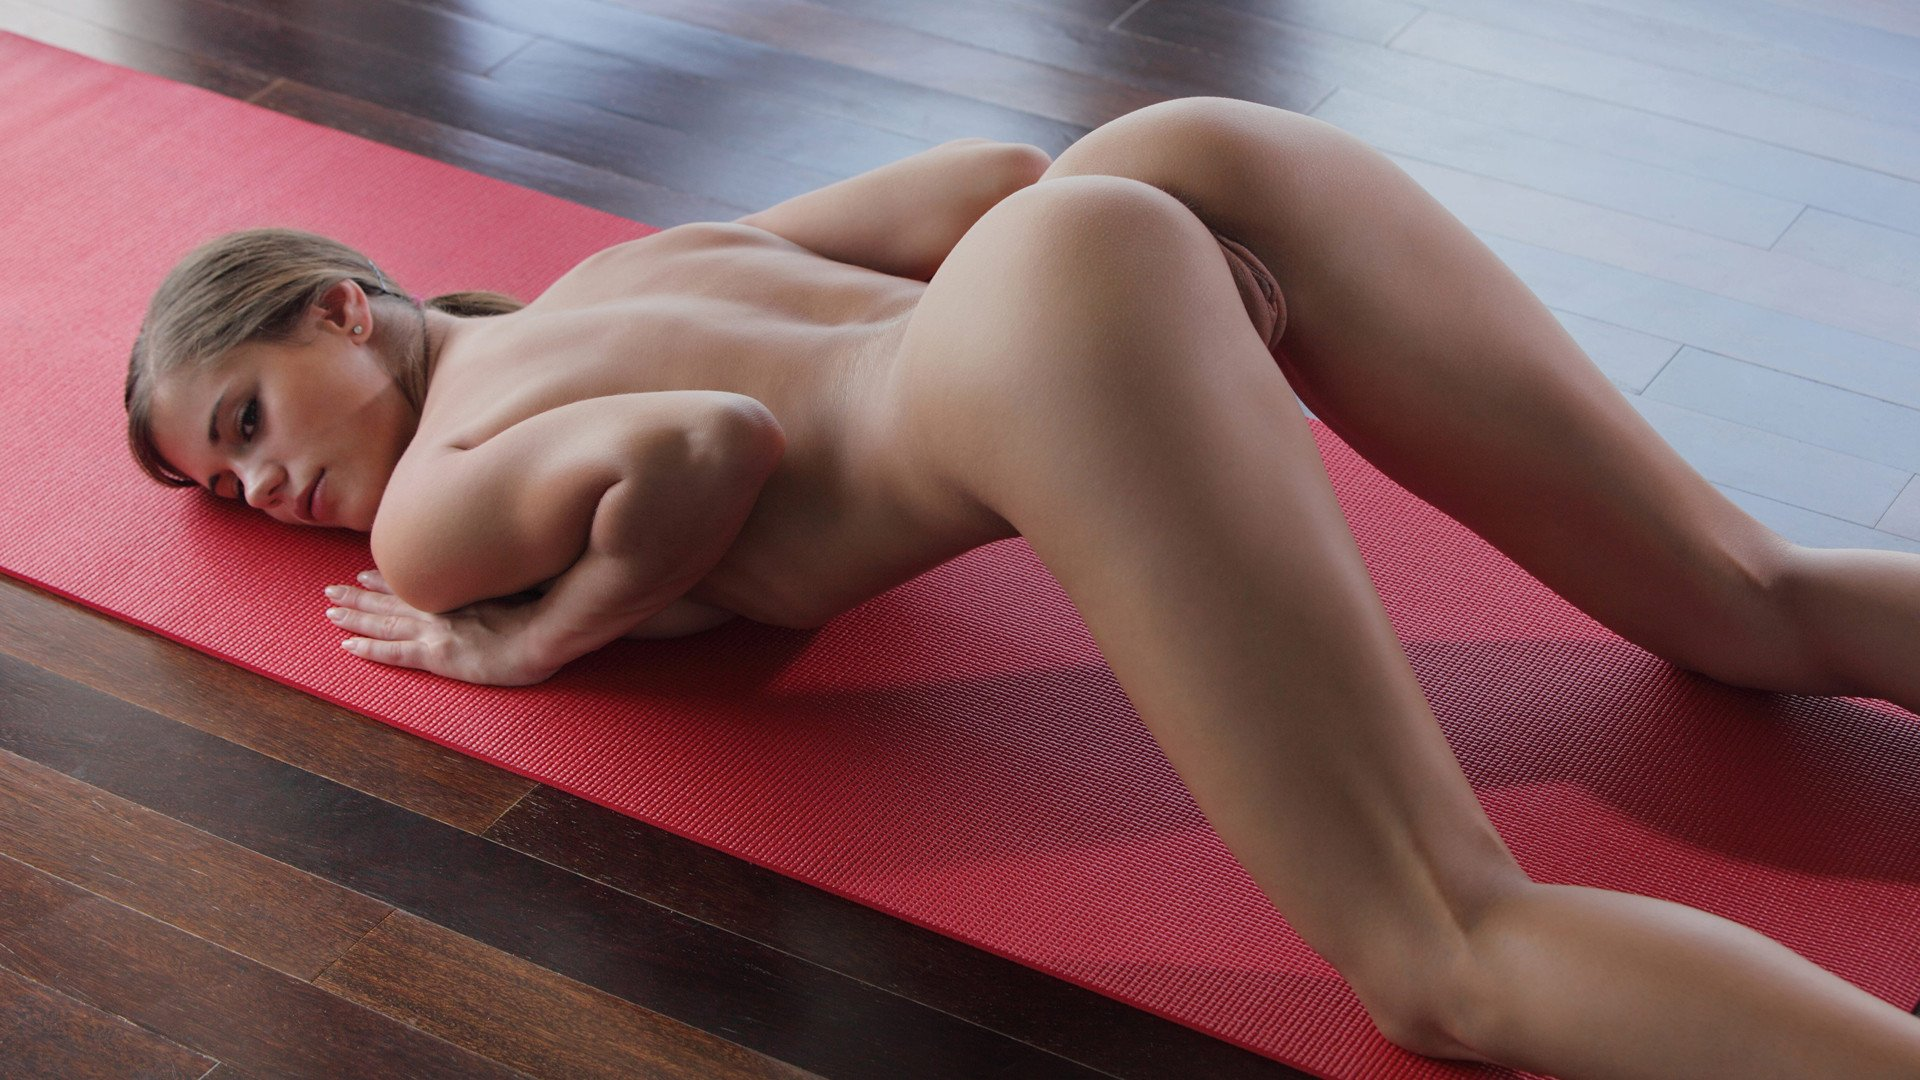 yoga-nude-sex-pics-tips-for-firsttime-anal-sex